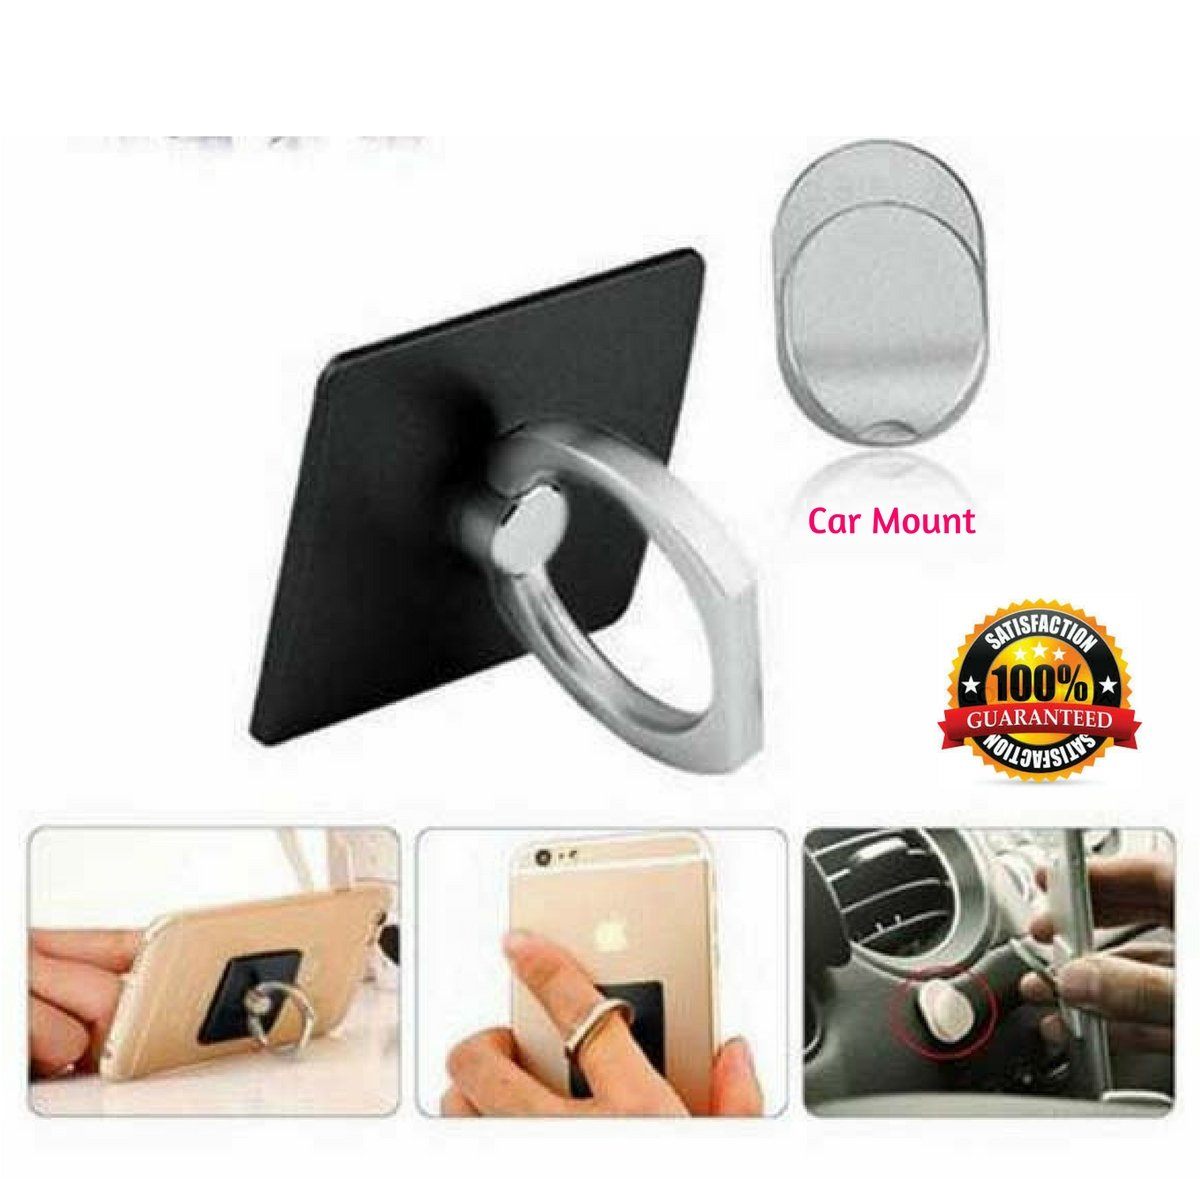 iPad or Tablet with Flat Rear Surface Compact /& Slim Rotates 360 /& Swivels 180 Acadia Premium Products 4326530021 Smartphone Includes Universal Car Mount Phone Ring for Secure /& Safe Grip and Stand Attaches to Any Phone